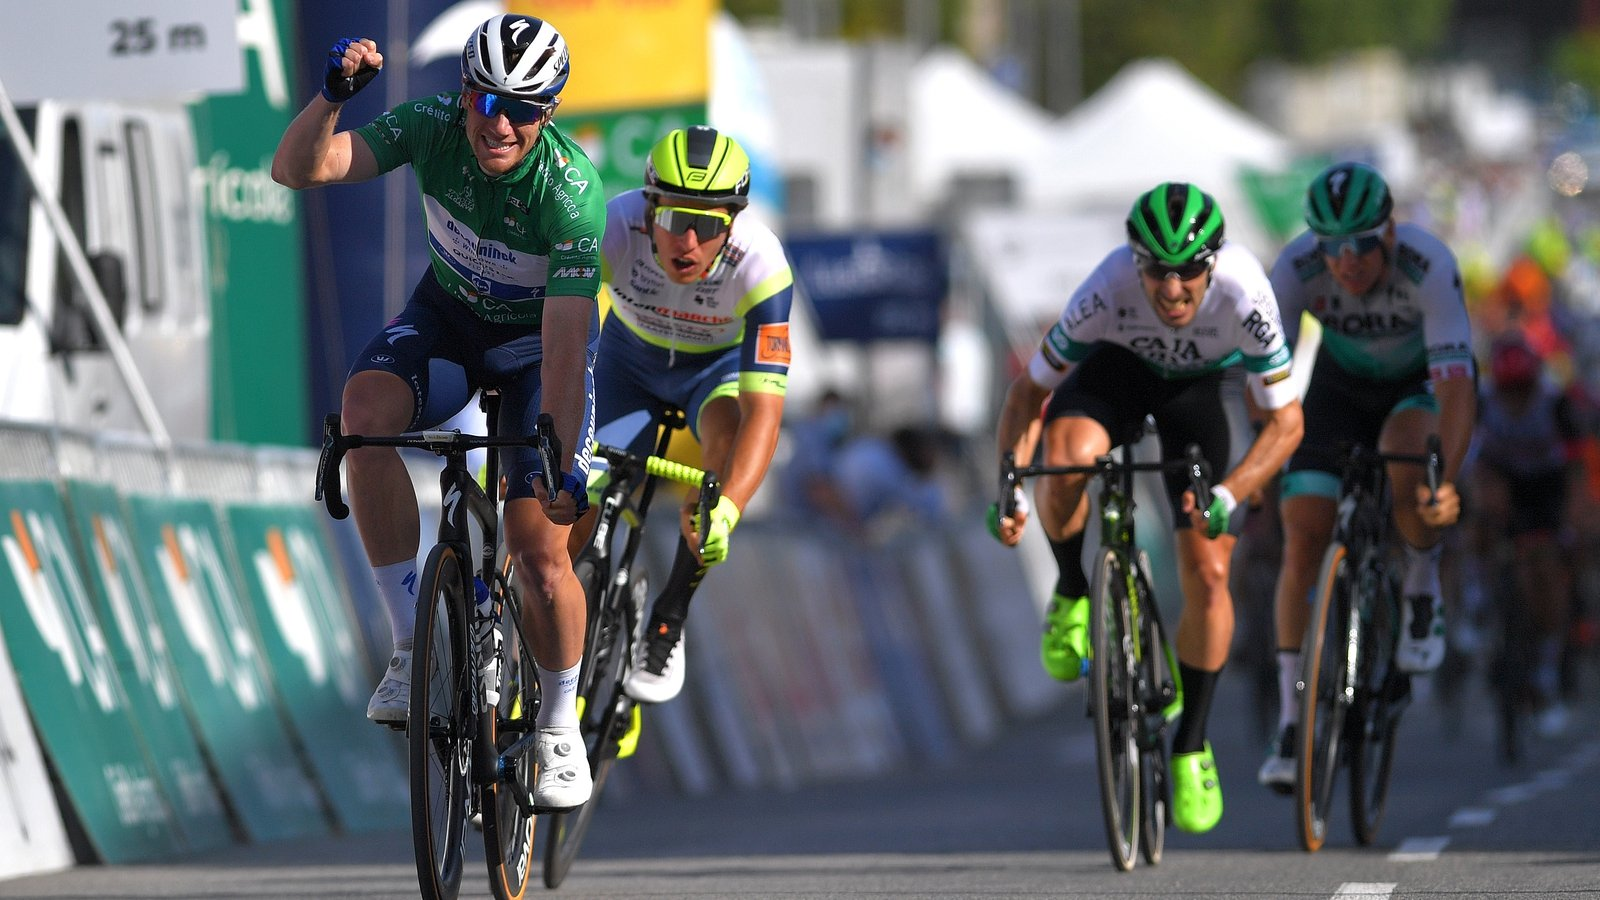 Bennett claims a second stage at Volta ao Algarve